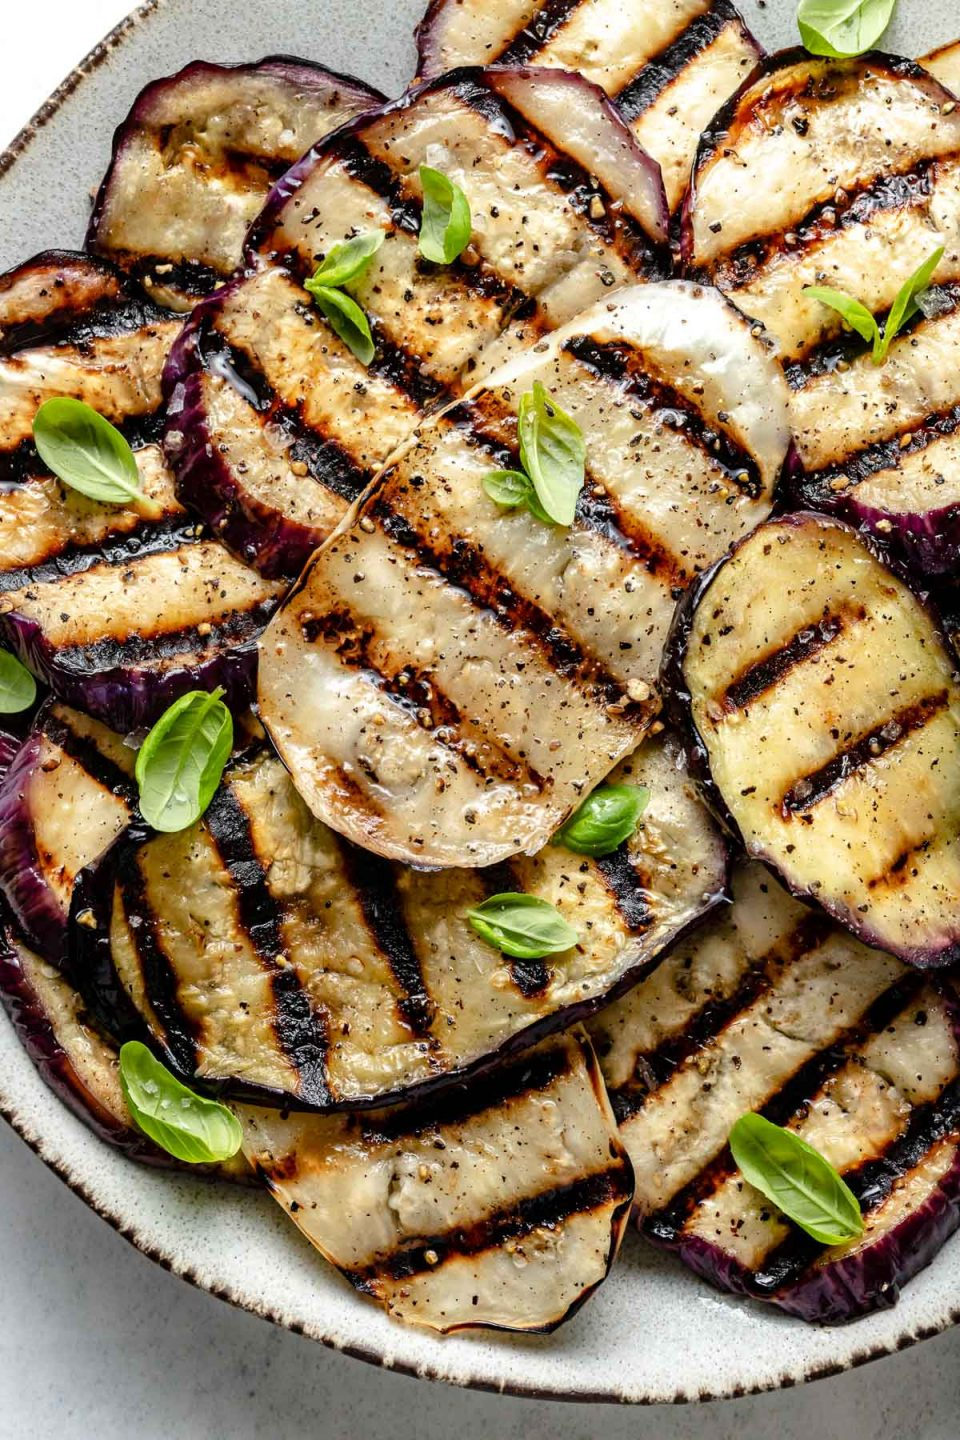 A close up of grilled eggplant rounds with char marks arranged on a white ceramic platter with brown edges. The grilled eggplant is garnished with kosher salt, ground black pepper, & fresh herbs. The platter sits on top of a white & gray marble surface.